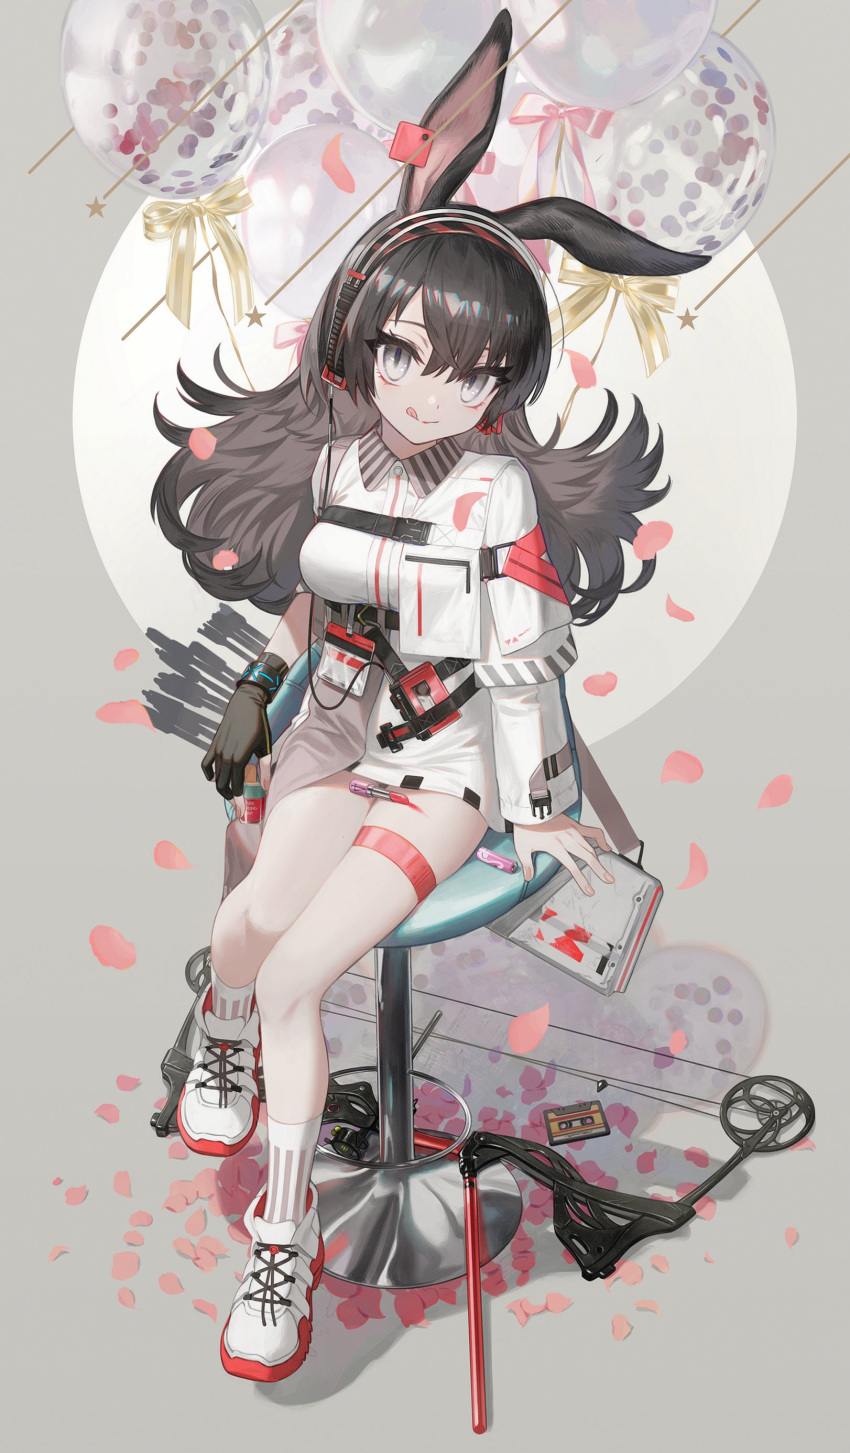 1girl :q absurdres animal_ears april_(arknights) arknights asymmetrical_sleeves balloon bangs bar_stool black_gloves black_hair bow_(weapon) cassette_tape collared_dress compound_bow cosmetics dress fingerless_gloves gloves grey_eyes hairband highres ji_mag_(artist) lipstick_tube long_hair long_sleeves looking_at_viewer mixed-language_commentary petals rabbit_ears rabbit_girl shoes single_fingerless_glove sitting sneakers solo stool thigh_strap tongue tongue_out weapon white_dress white_footwear white_legwear wristband